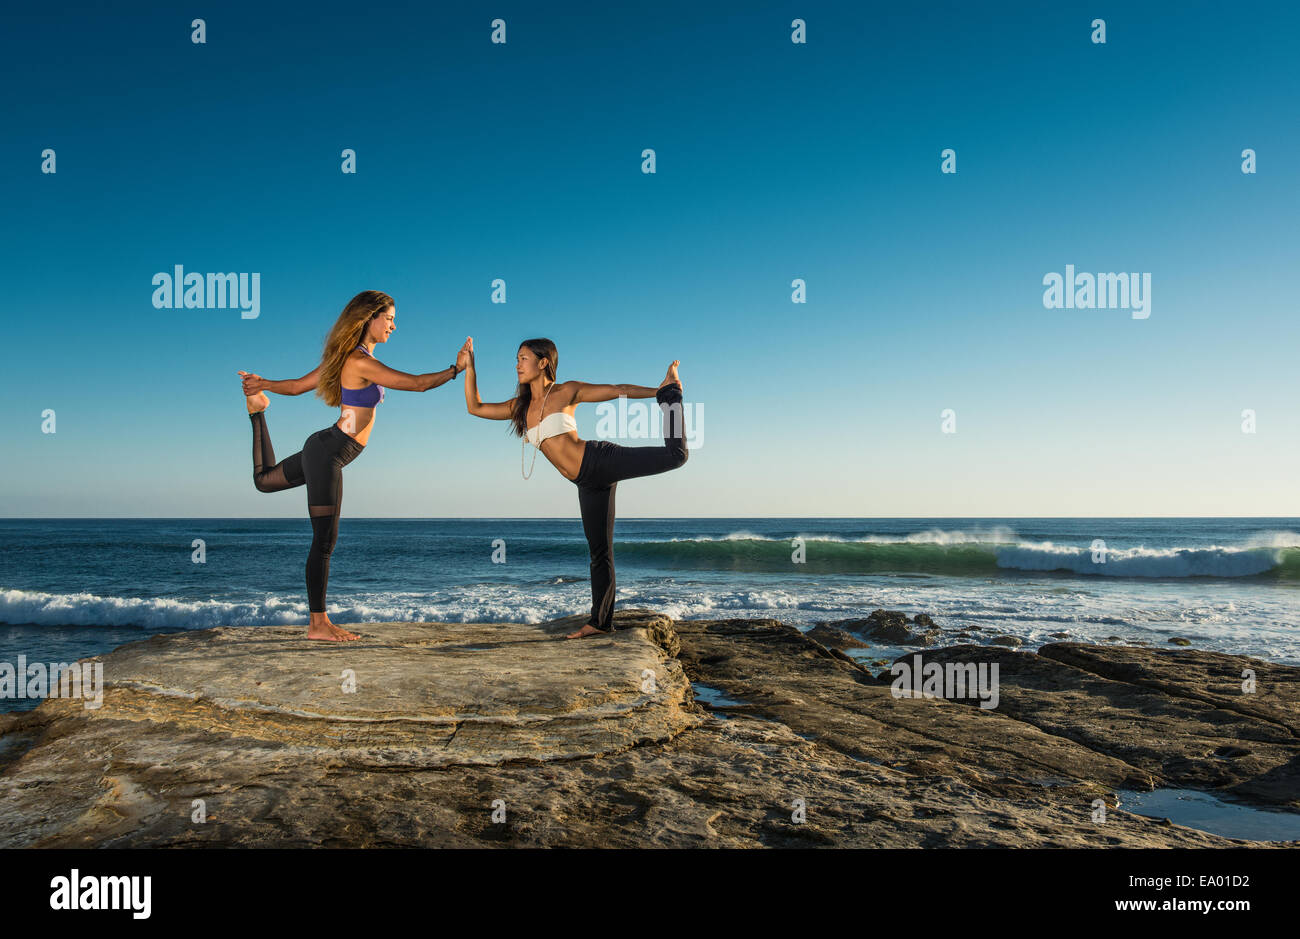 Dancer pose, Windansea beach, La Jolla, California - Stock Image